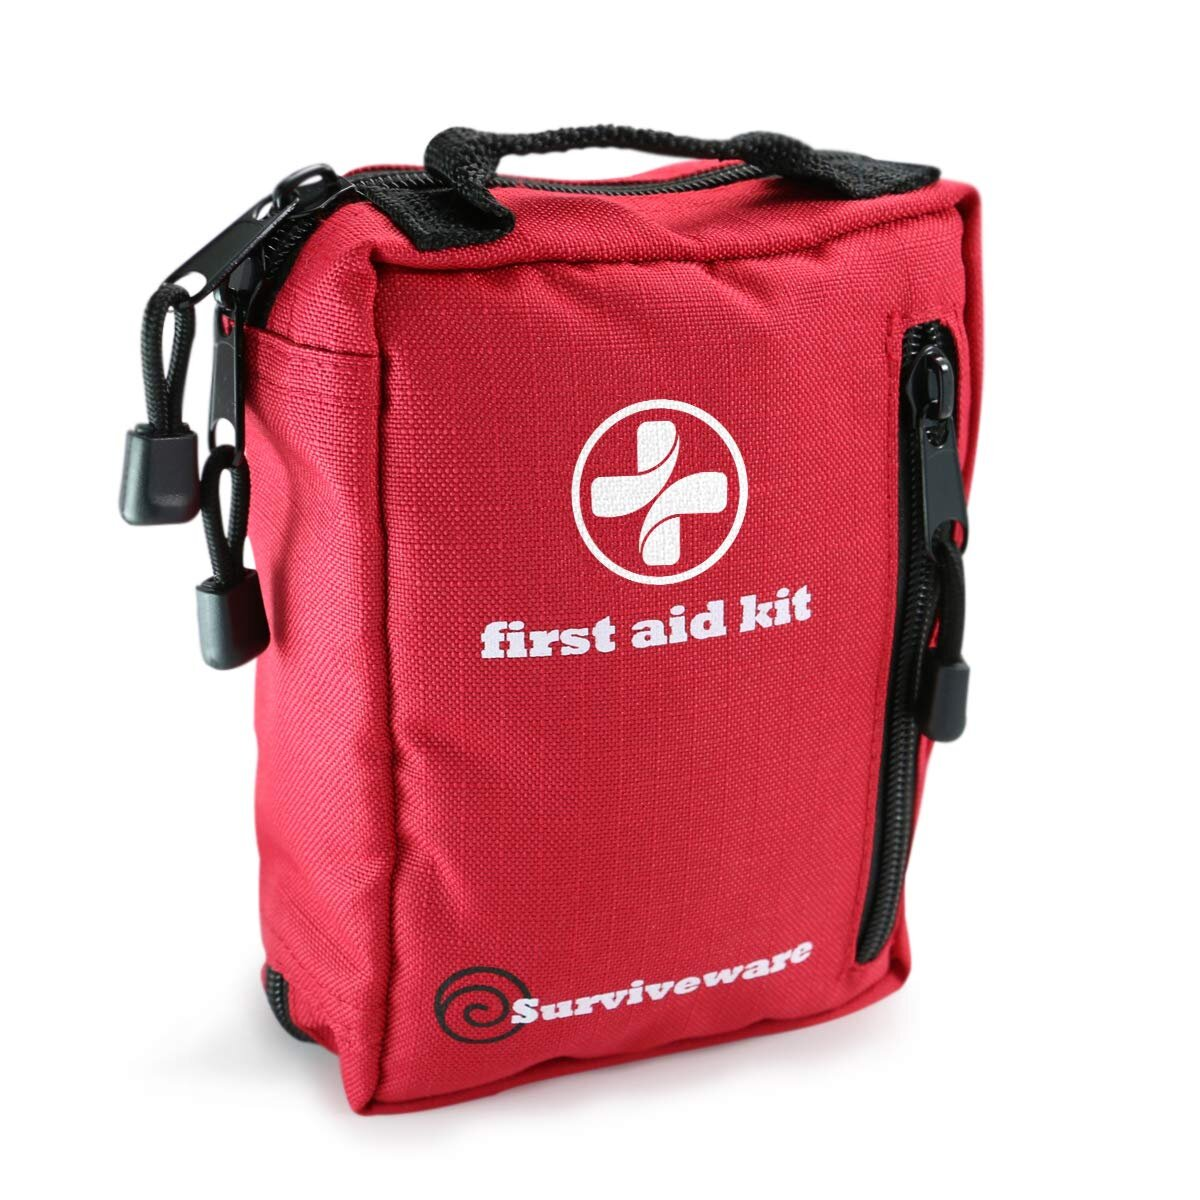 Surviveware-first-aid-kit-gifts-for-hikers-him-her.jpg